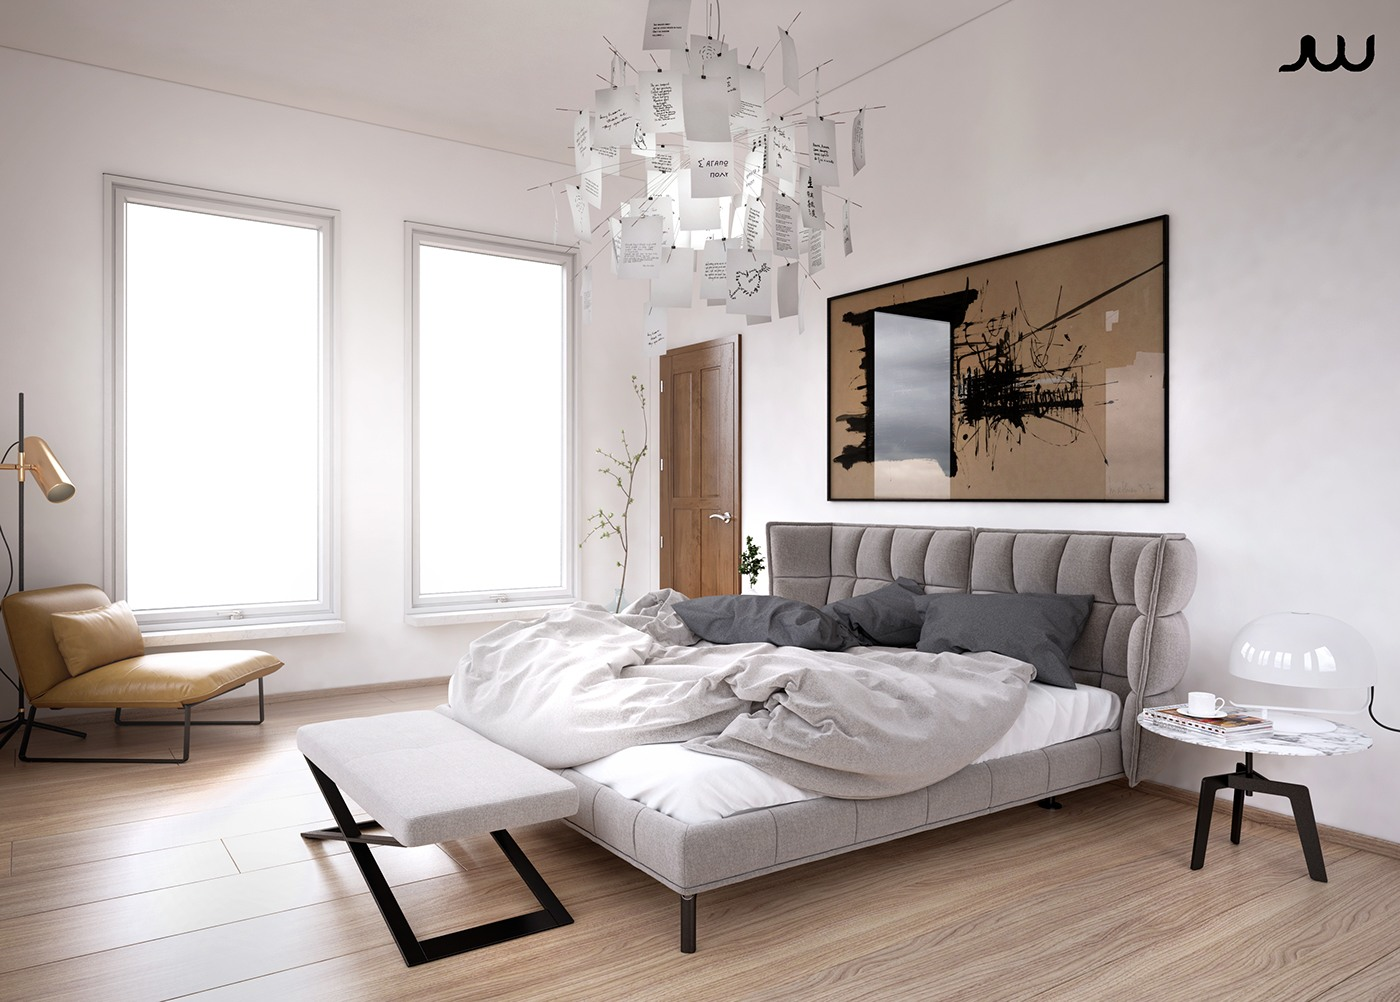 Ultra luxury apartment design - Designers bedrooms ...